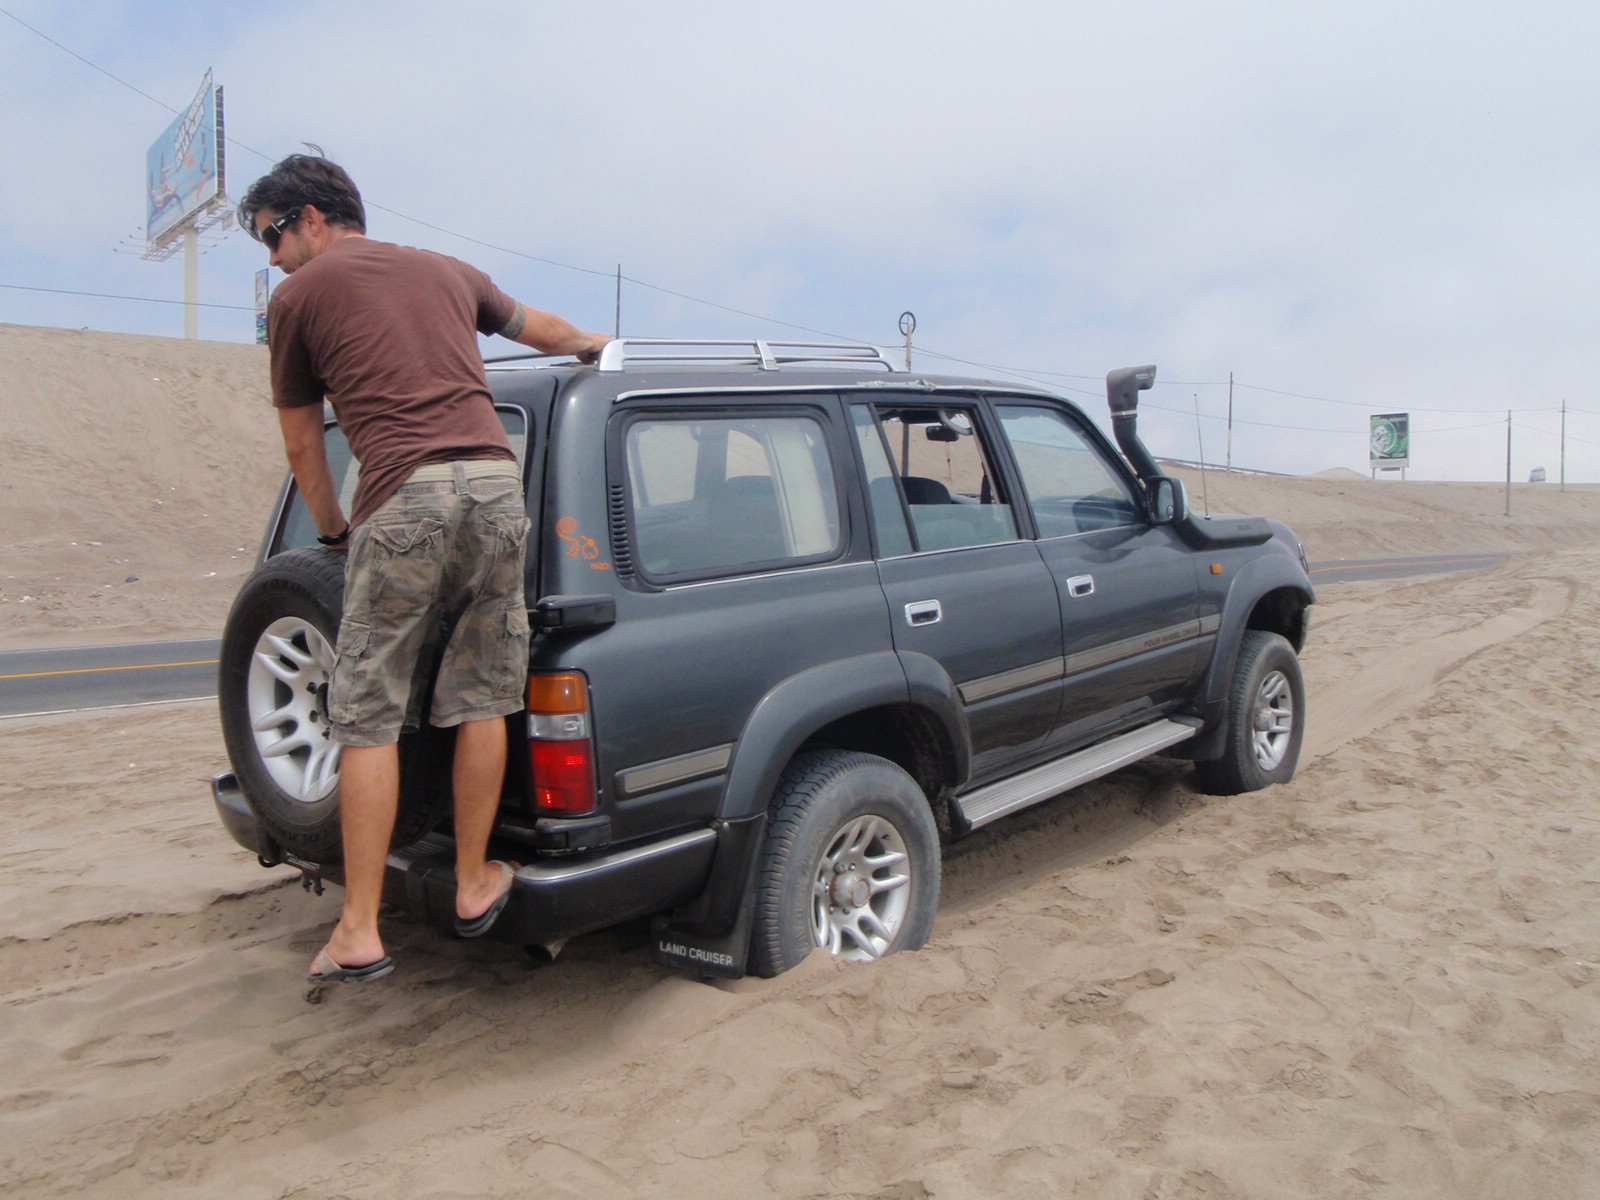 Stuck in the sand on the search for surf – with Jaime, somewhere south of Lima, Peru.